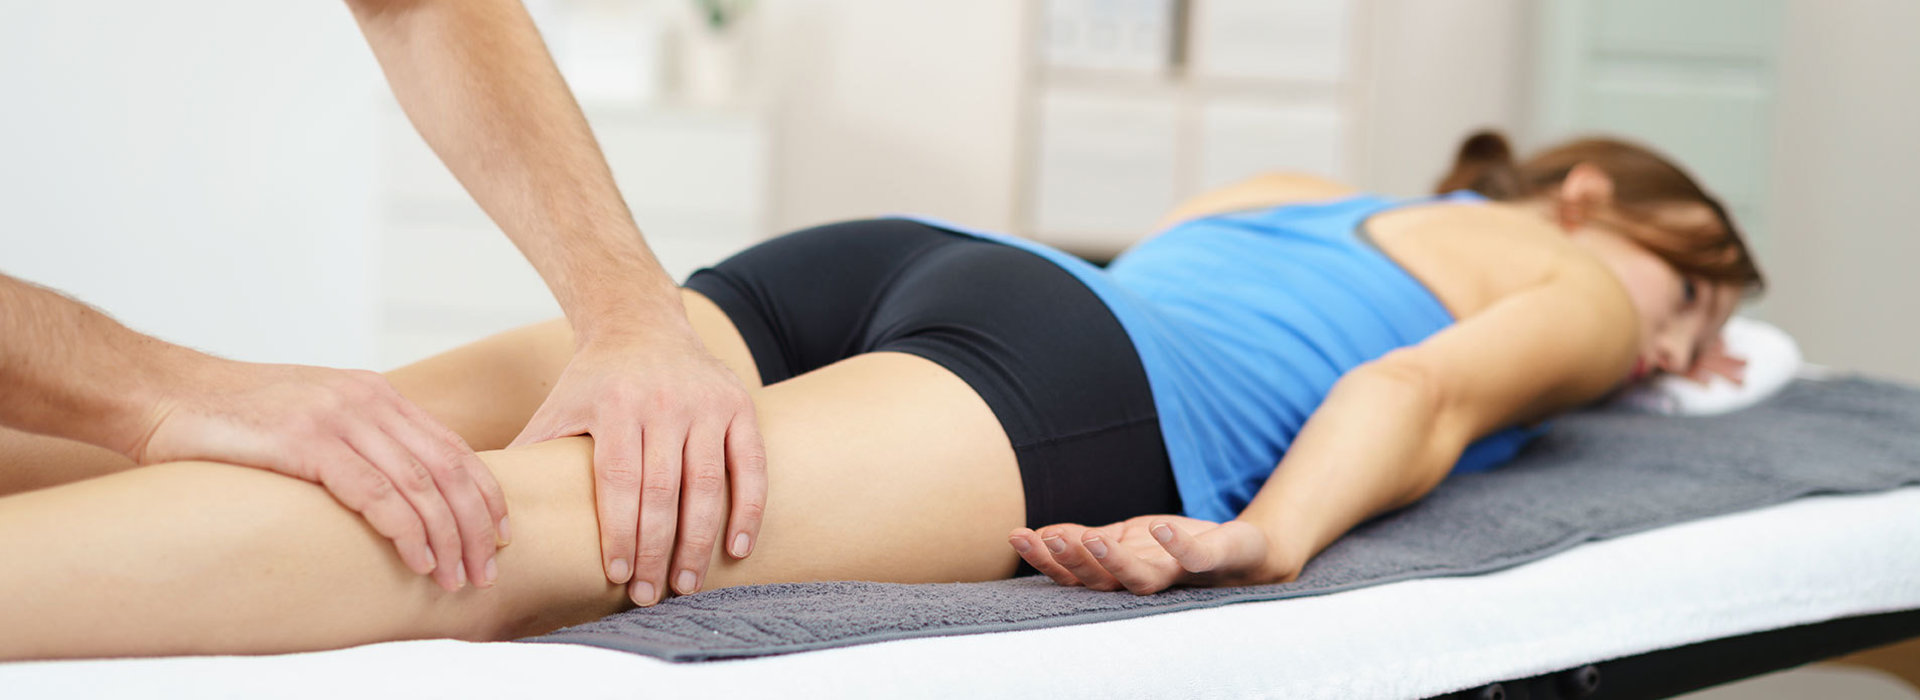 Sports/Deep Tissue Massage SPECIAL OFFER: Only £23 for 60 minutes!